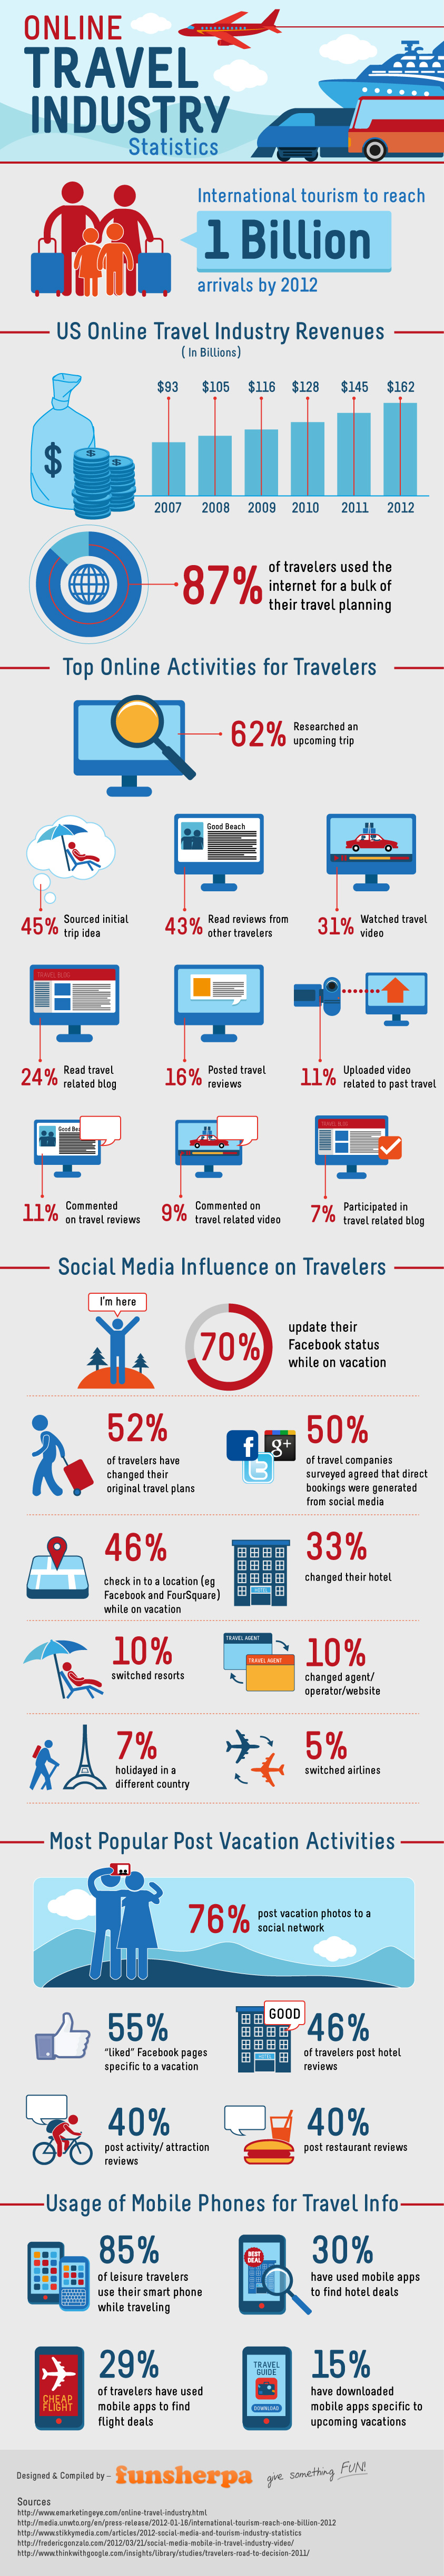 Impact of the Internet and Social Media on Travel Industry